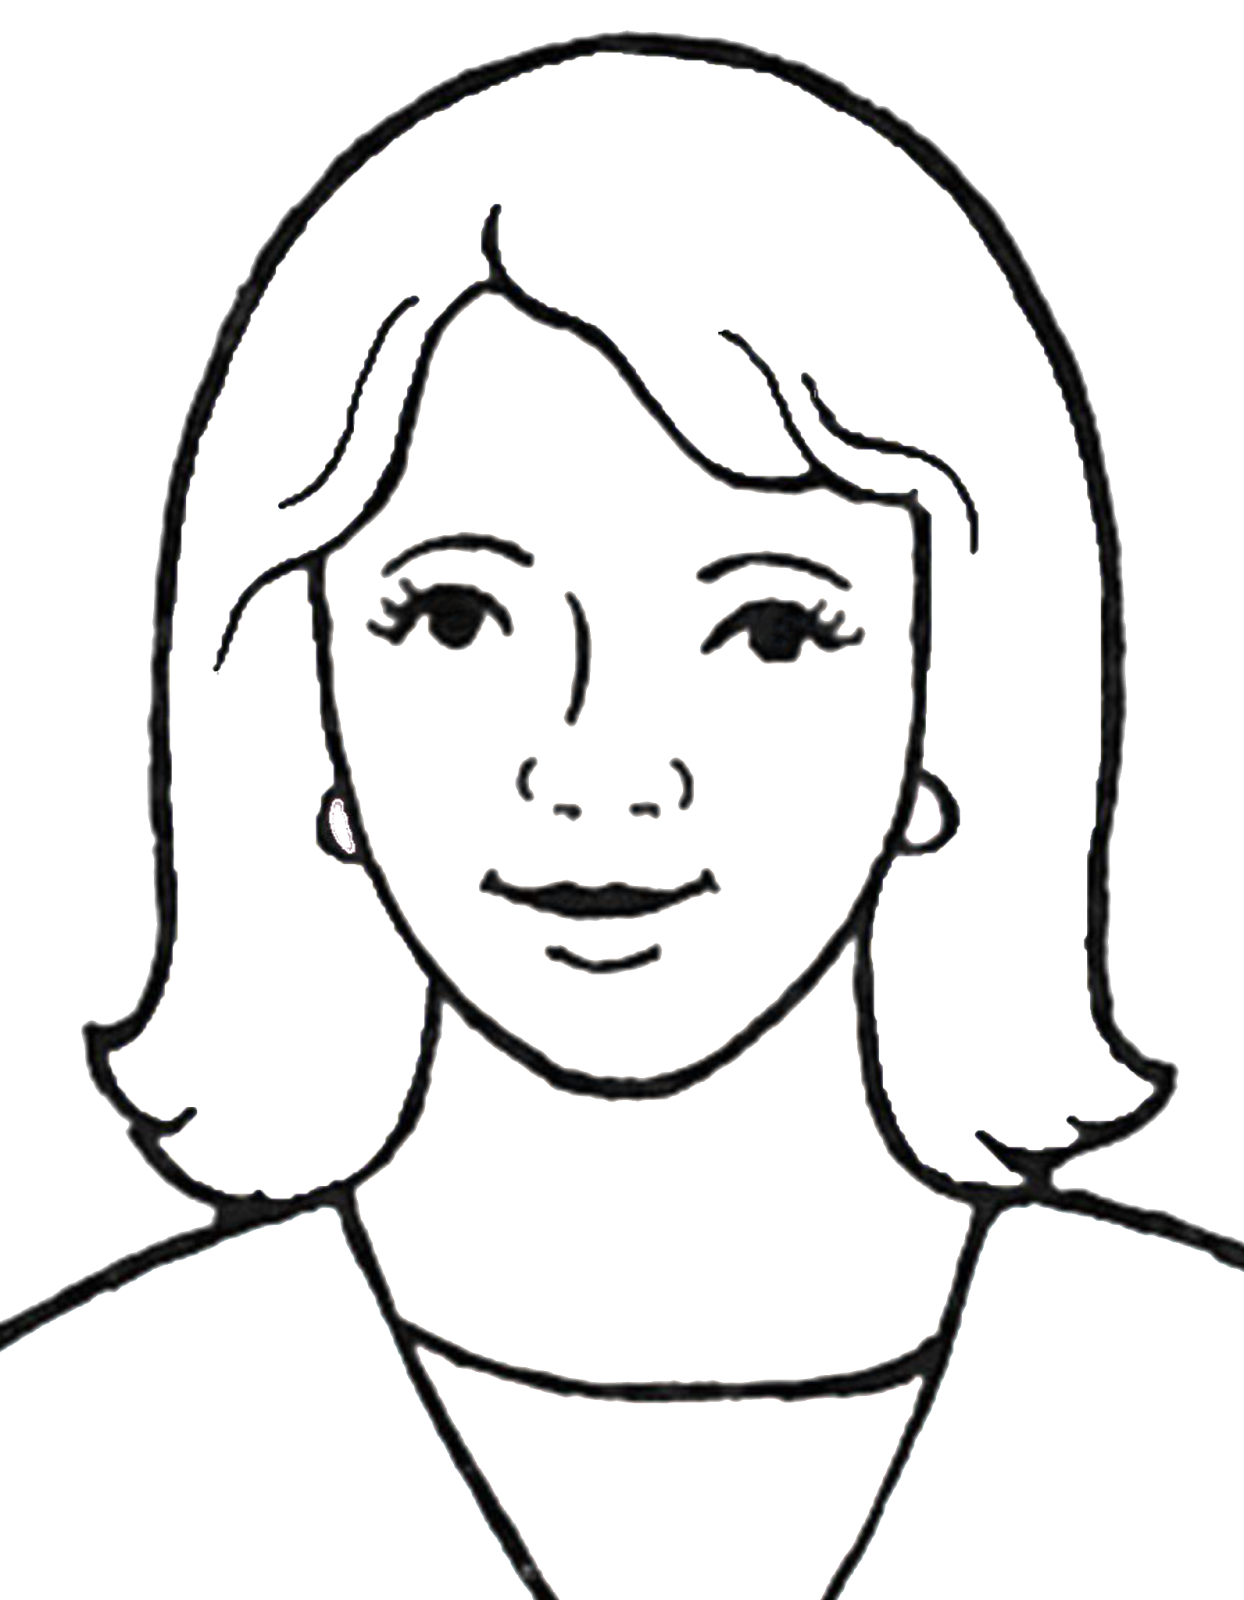 Chin drawing clip art. Mother images at getdrawings